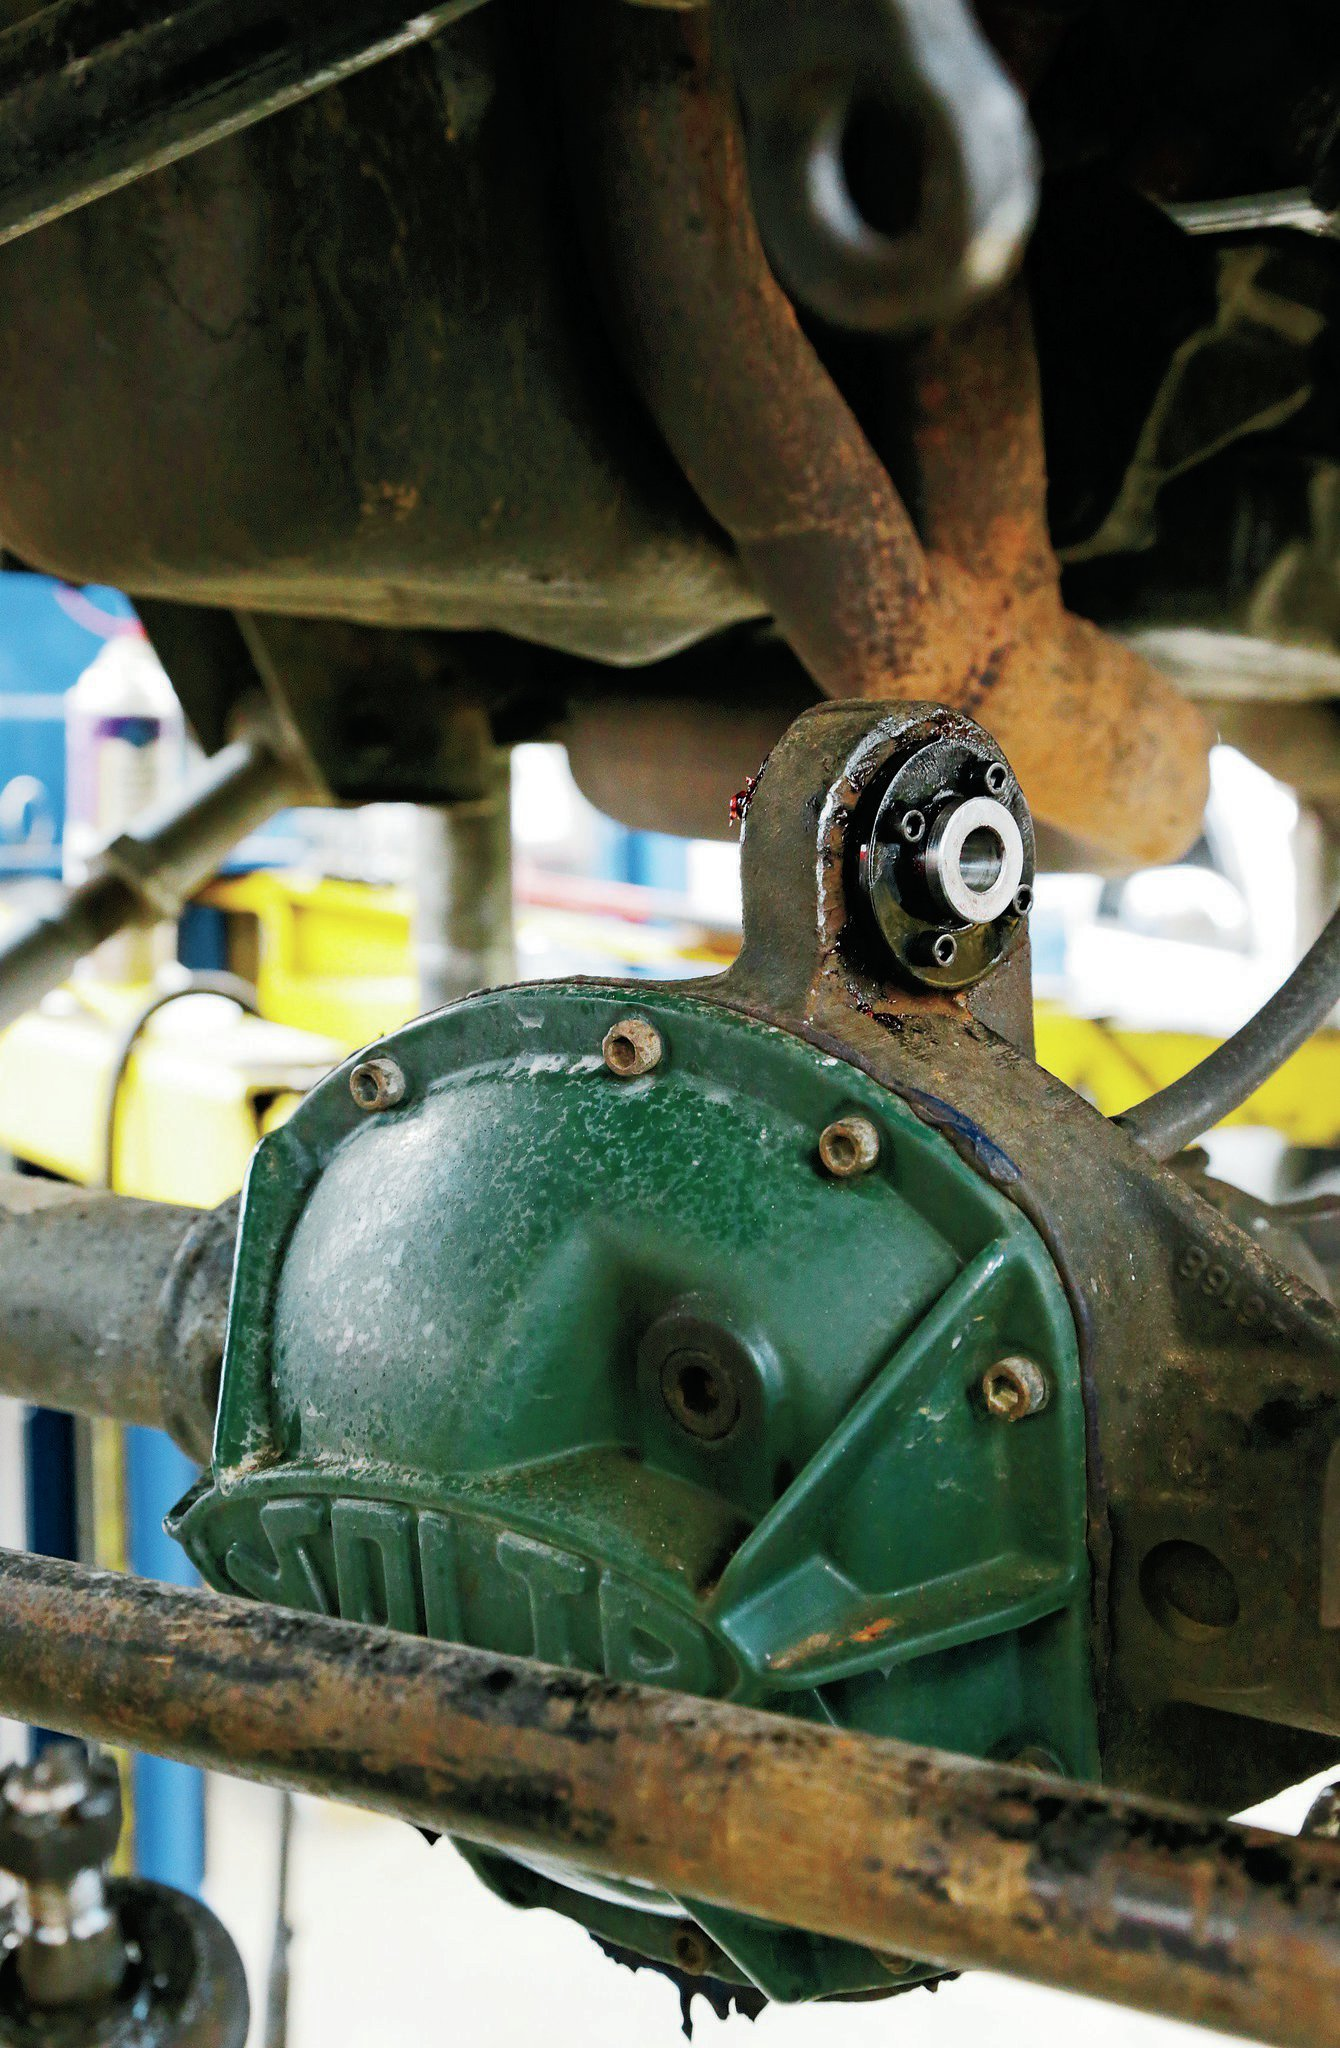 In place of the stock rubber bushing is a heavy-duty Krawler bushing that is designed to deal with the additional strain and load of the suspension. This joint is rebuildable, and if you're wheeling your Jeep frequently, it's something we would keep a spare of, just in case.